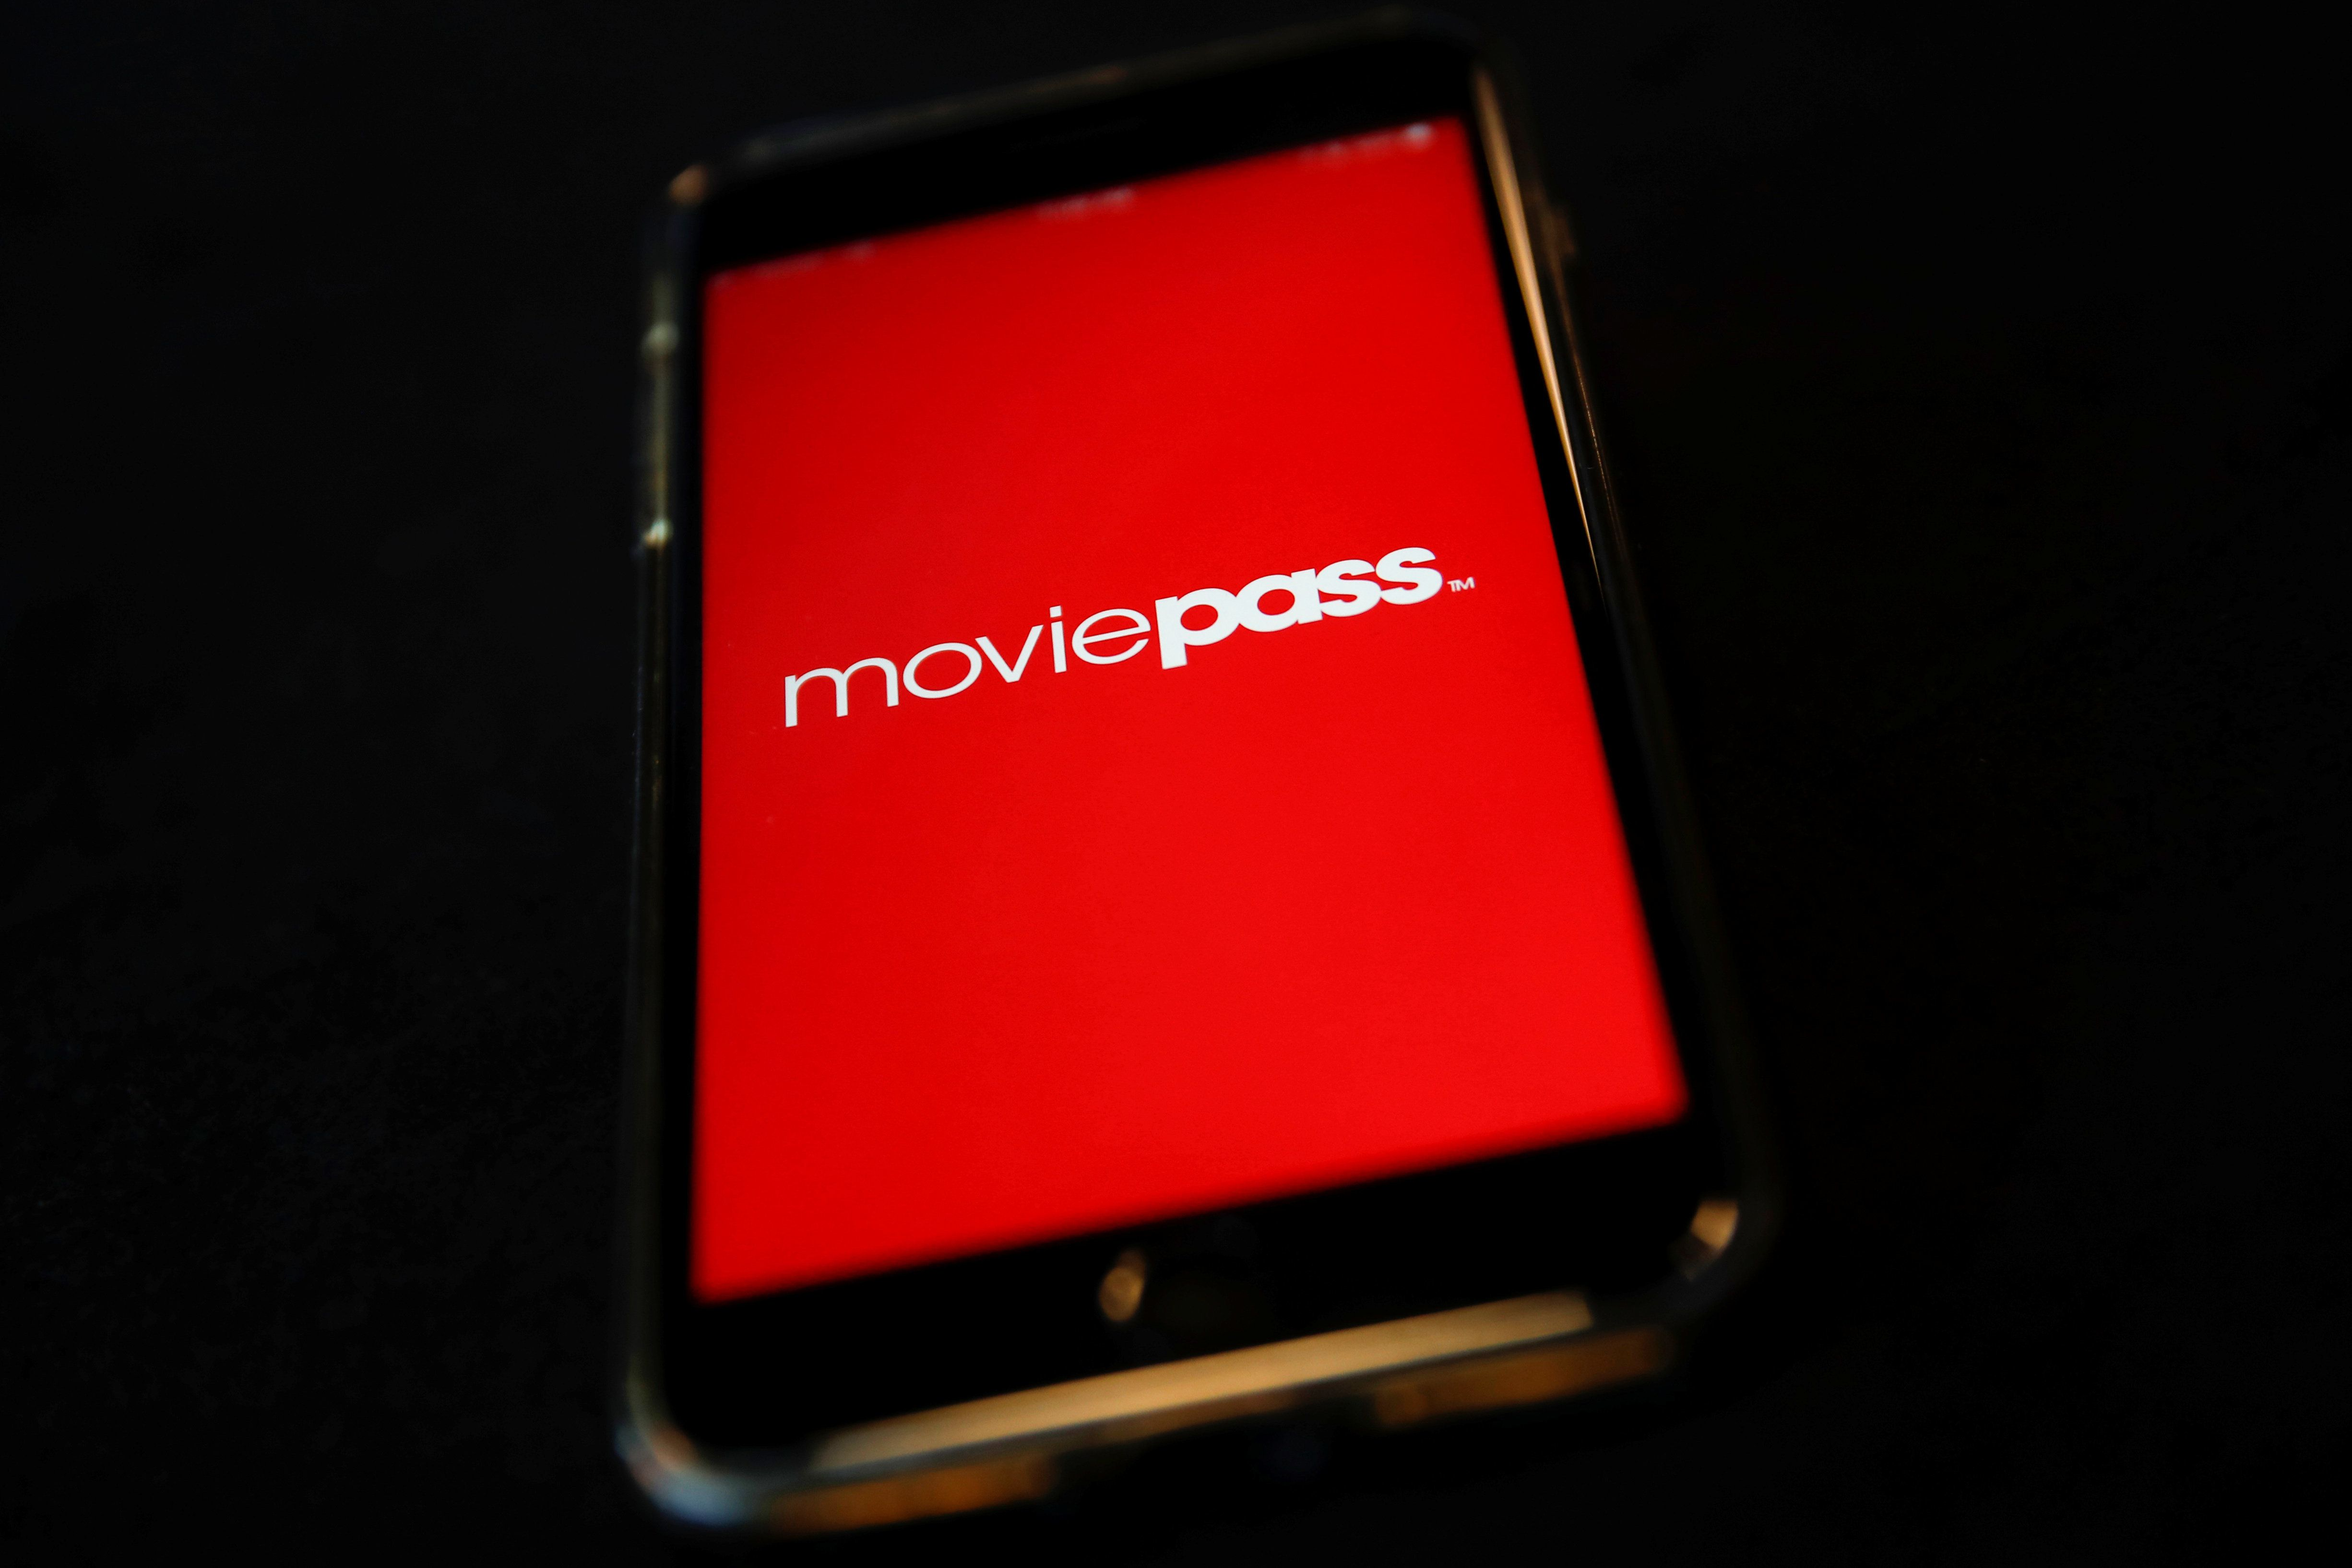 MoviePass Reduces Offer To 3 Films Per Month In Bid To Save